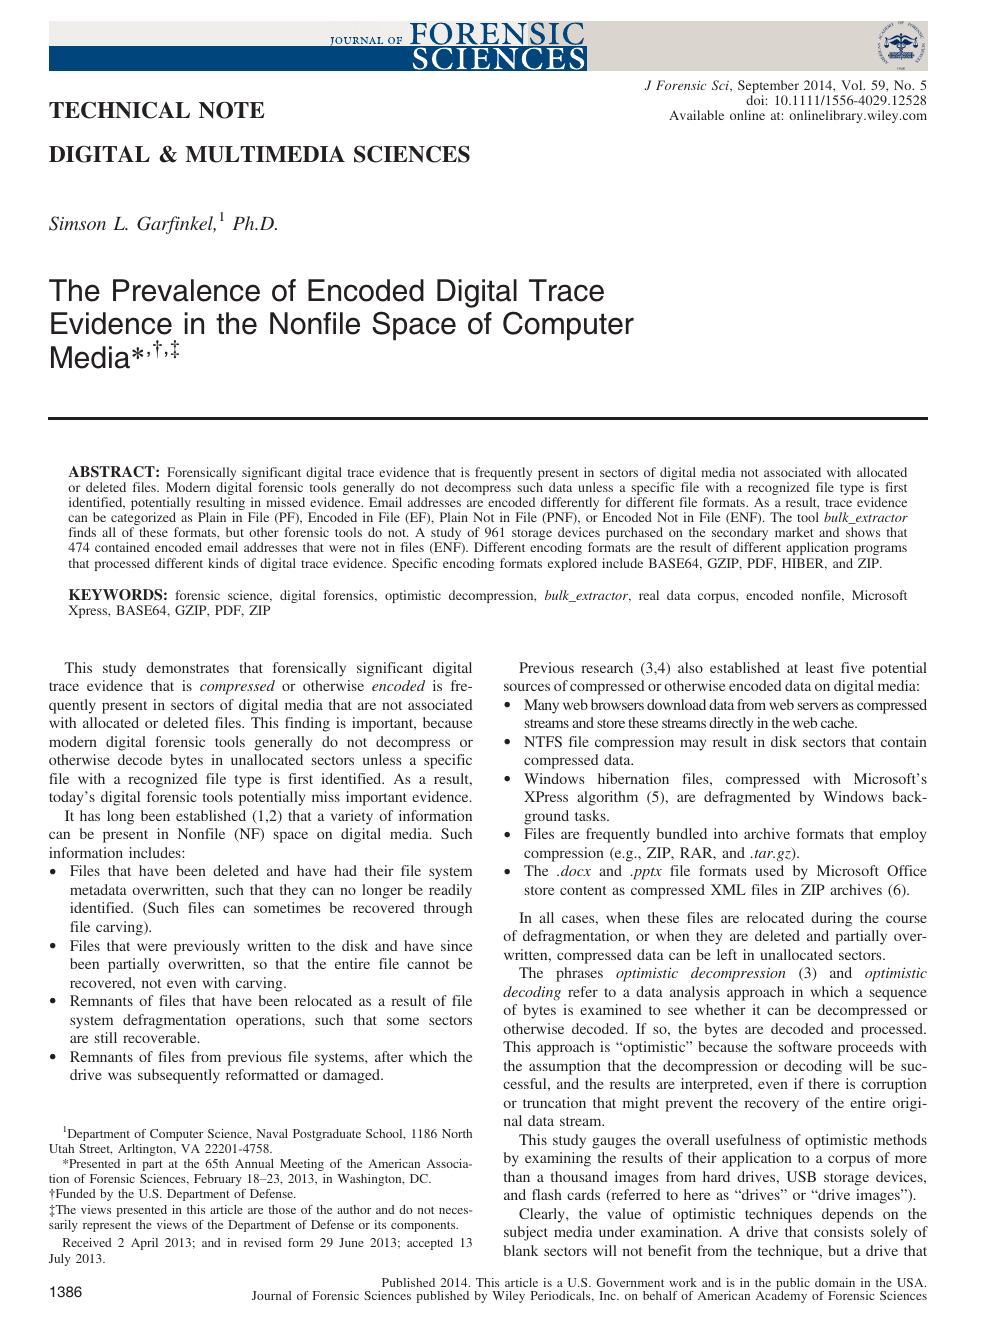 The Prevalence of Encoded Digital Trace Evidence in the